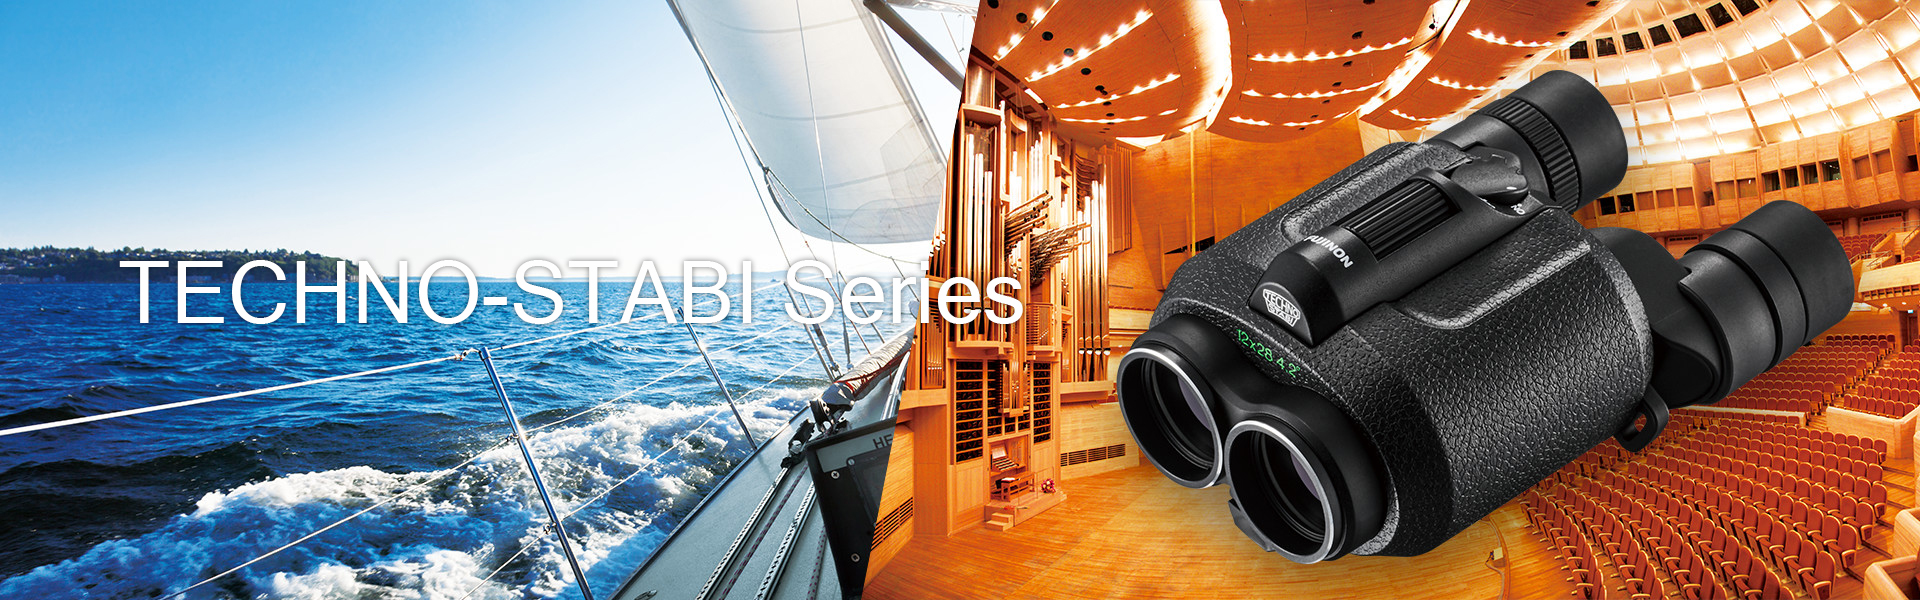 [photo] Boat ride on the ocean and TECHNO-STABI Series binocular with an indoor theatre background